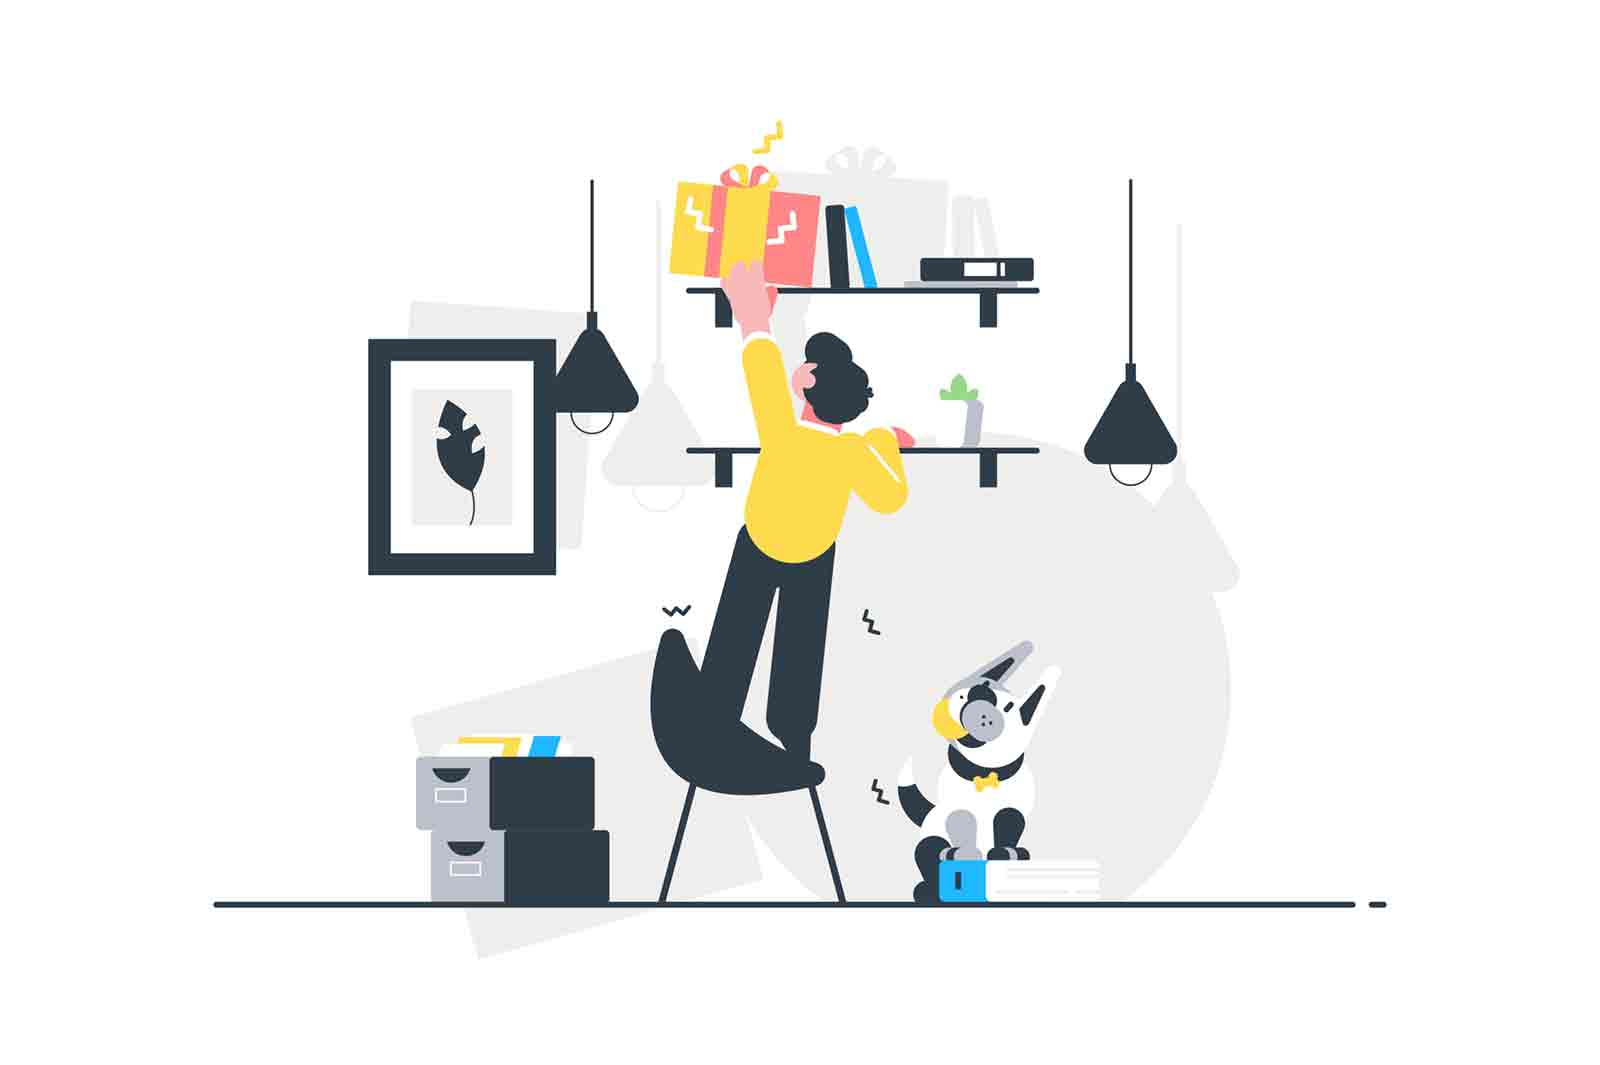 Man trying to reach gift box vector illustration. Man standing on chair and trying to reach festive present box lying on shelves flat style design. Happy Birthday and surprise concept